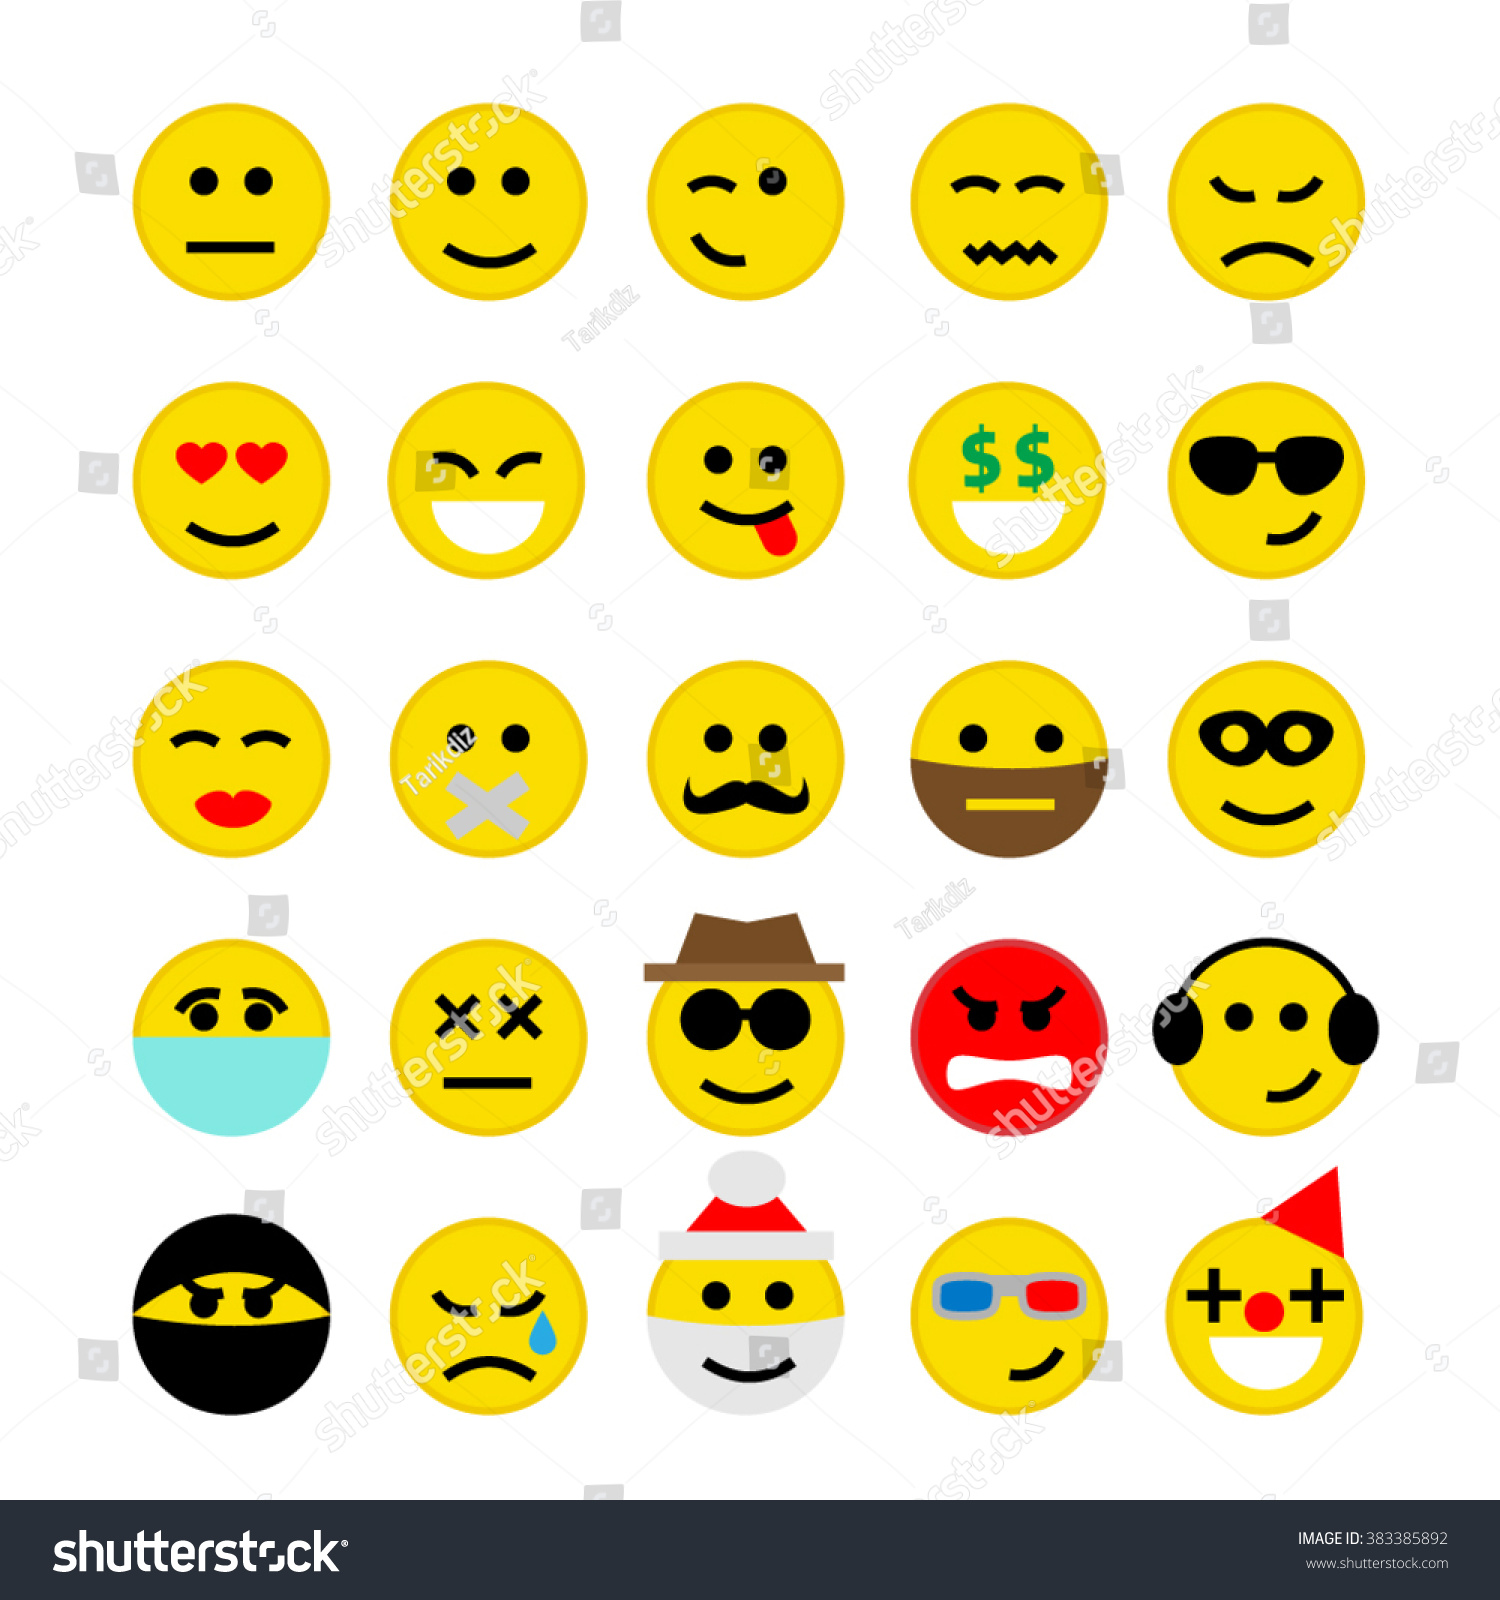 Emoticons emoji smiley faces set isolated stock vector 383385892 emoticons emoji smiley faces set isolated on white background buycottarizona Images